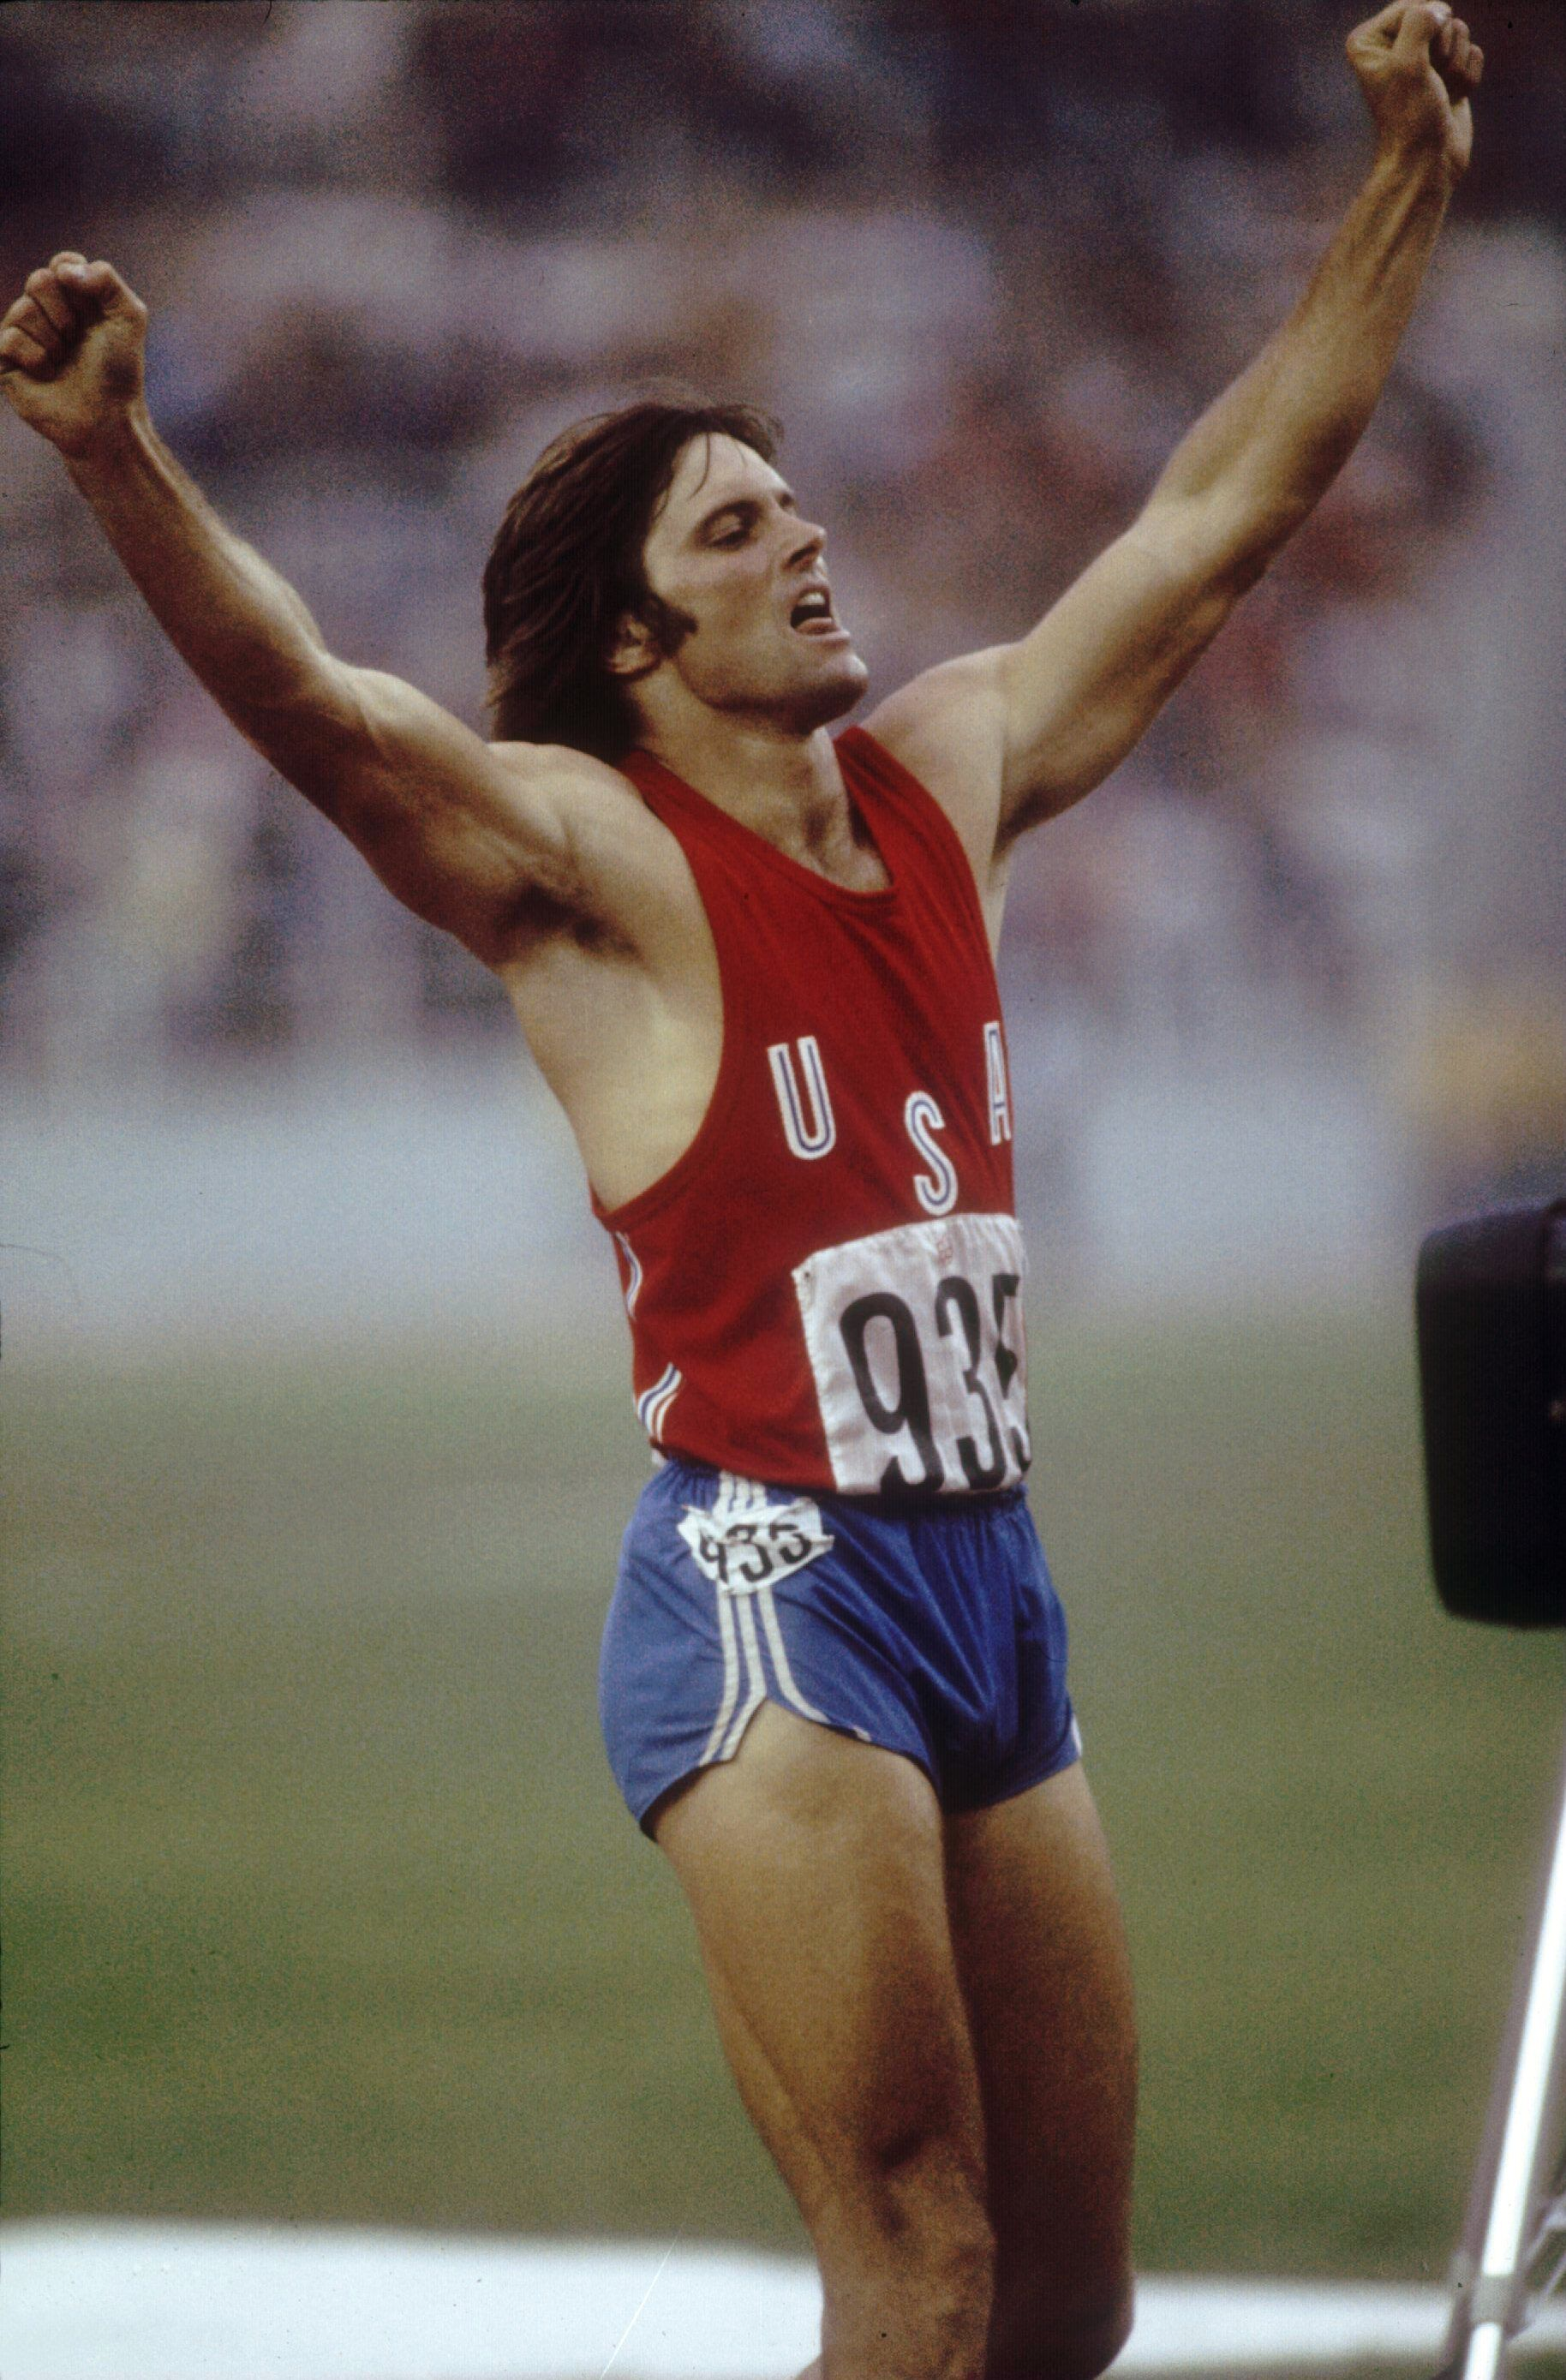 Bruce Jenner of the USA celebrates during his record setting performance in the decathlon. | Source: Getty Images